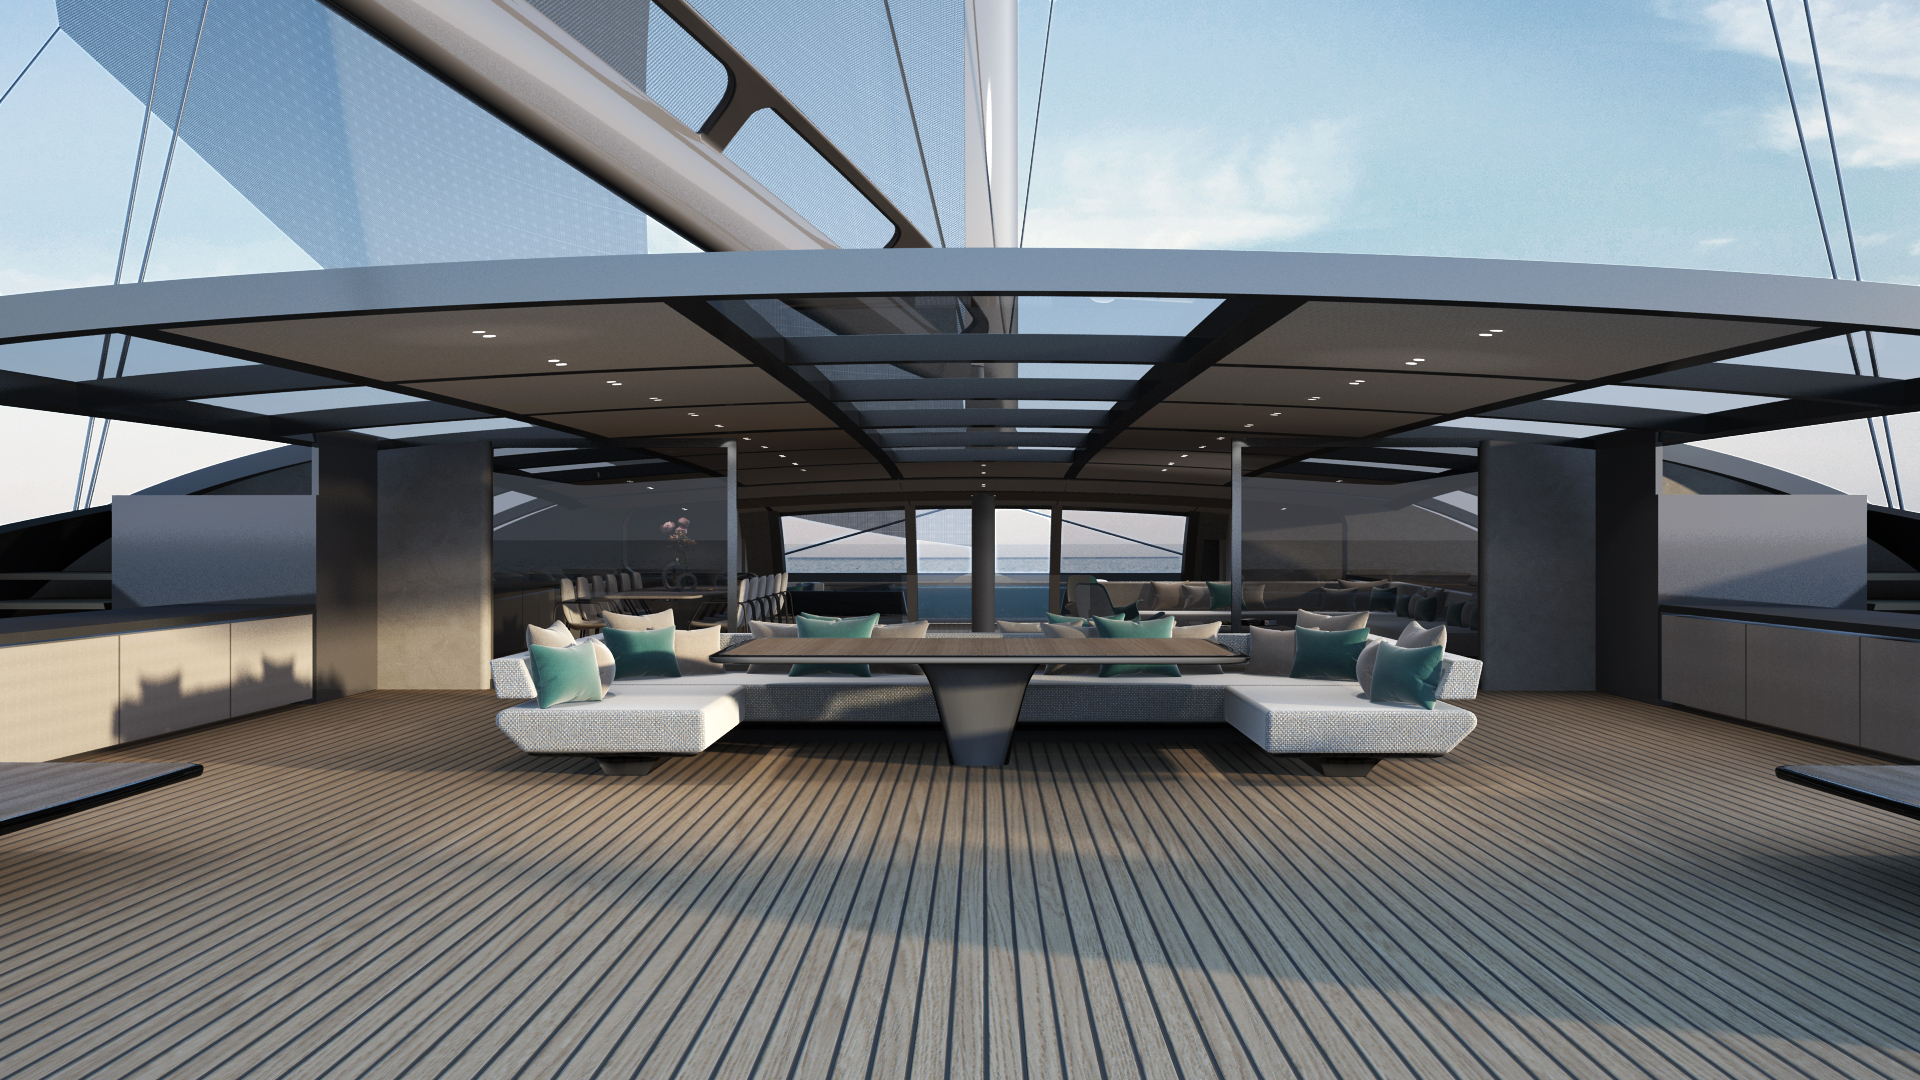 IMAGES BlackCat Superyachts